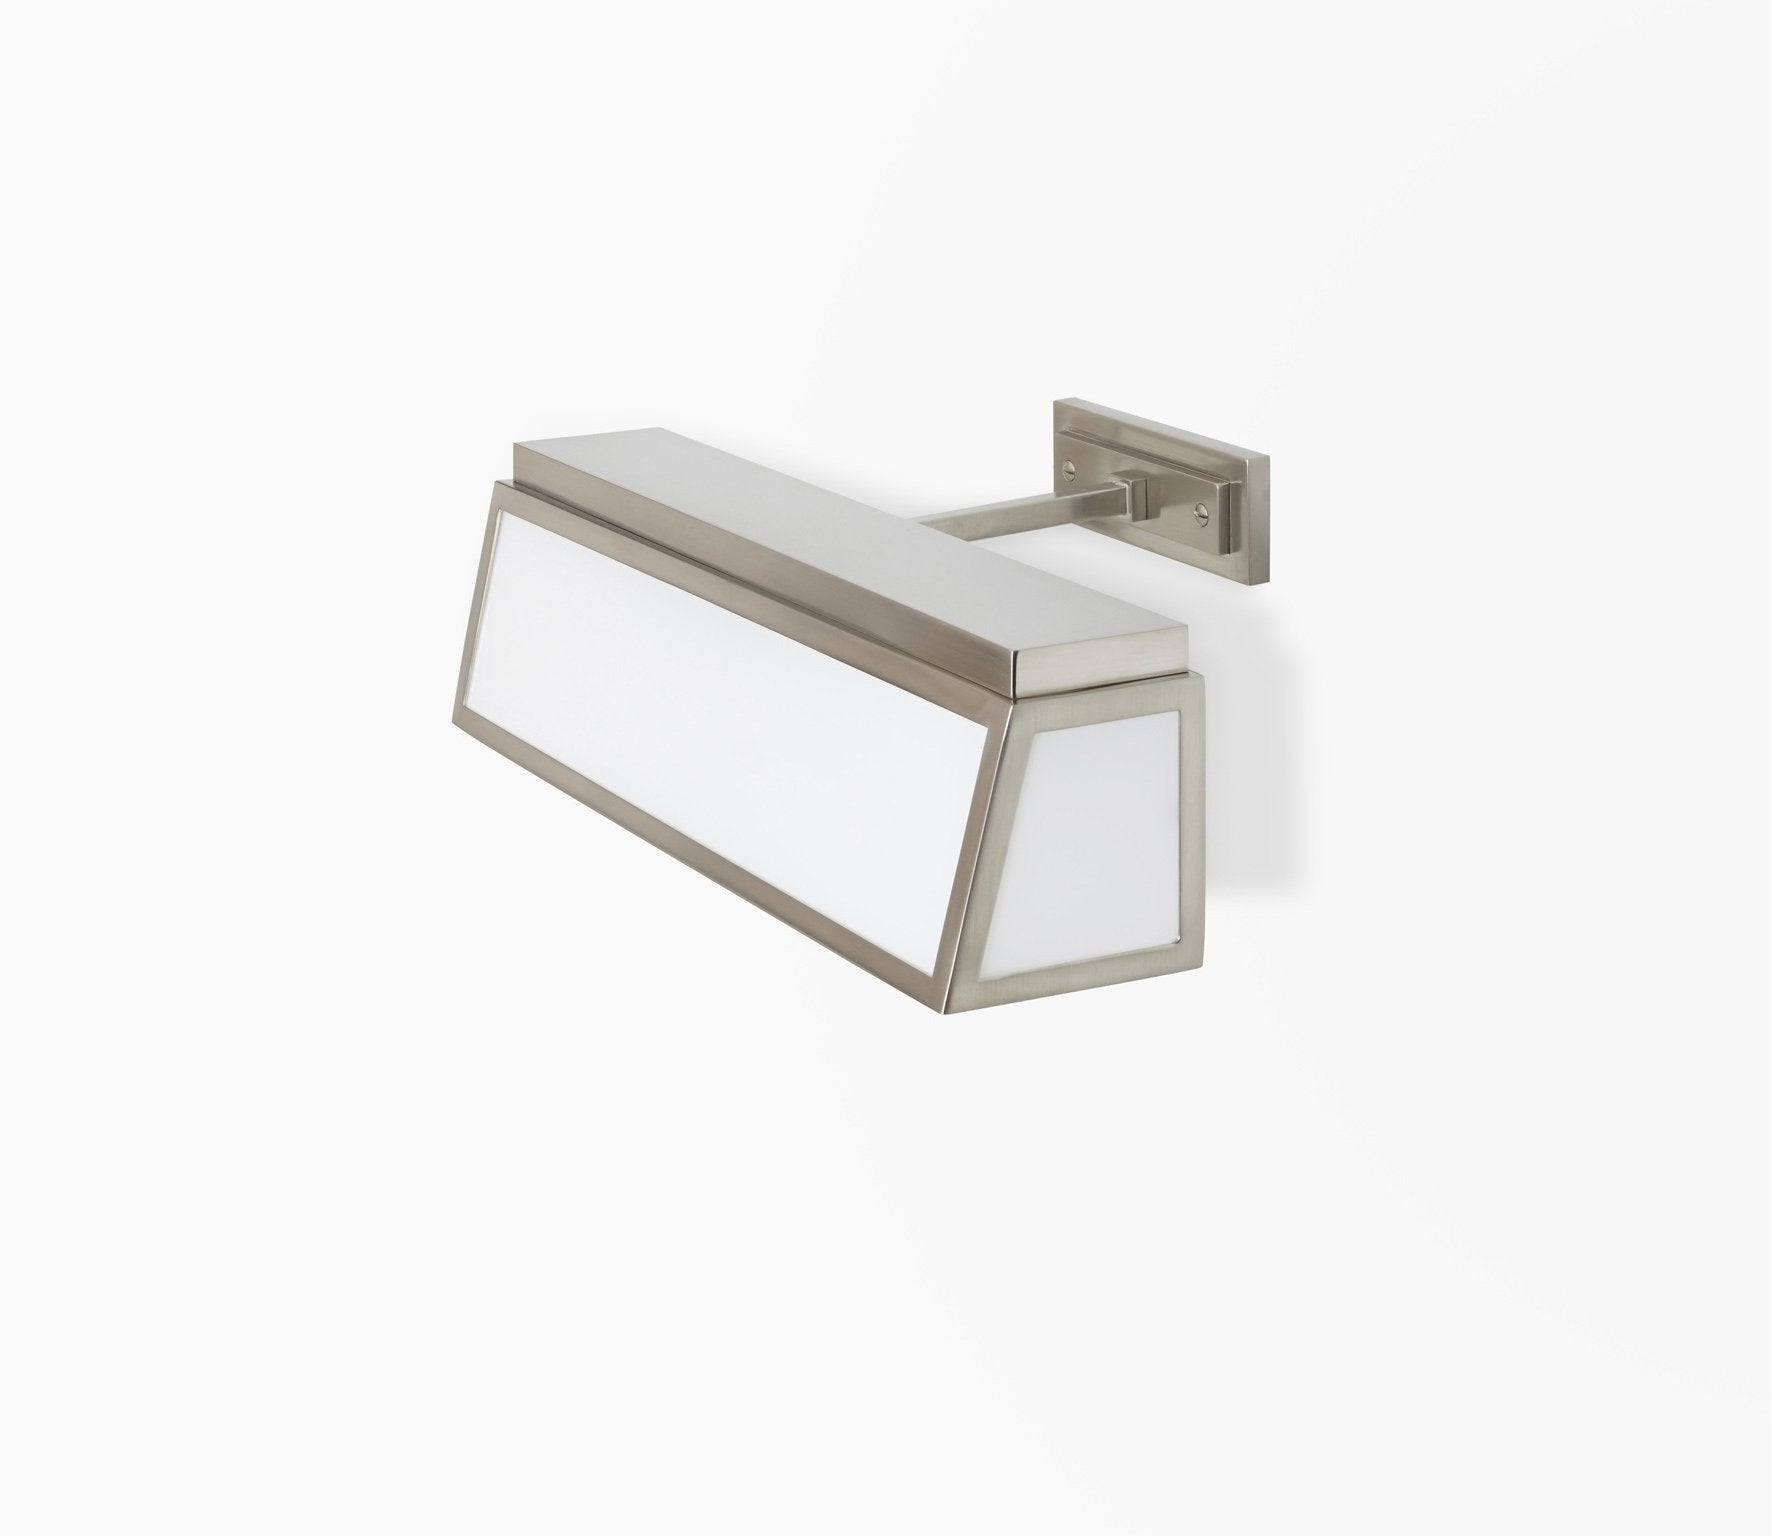 Strand Wall Light Product Image 3